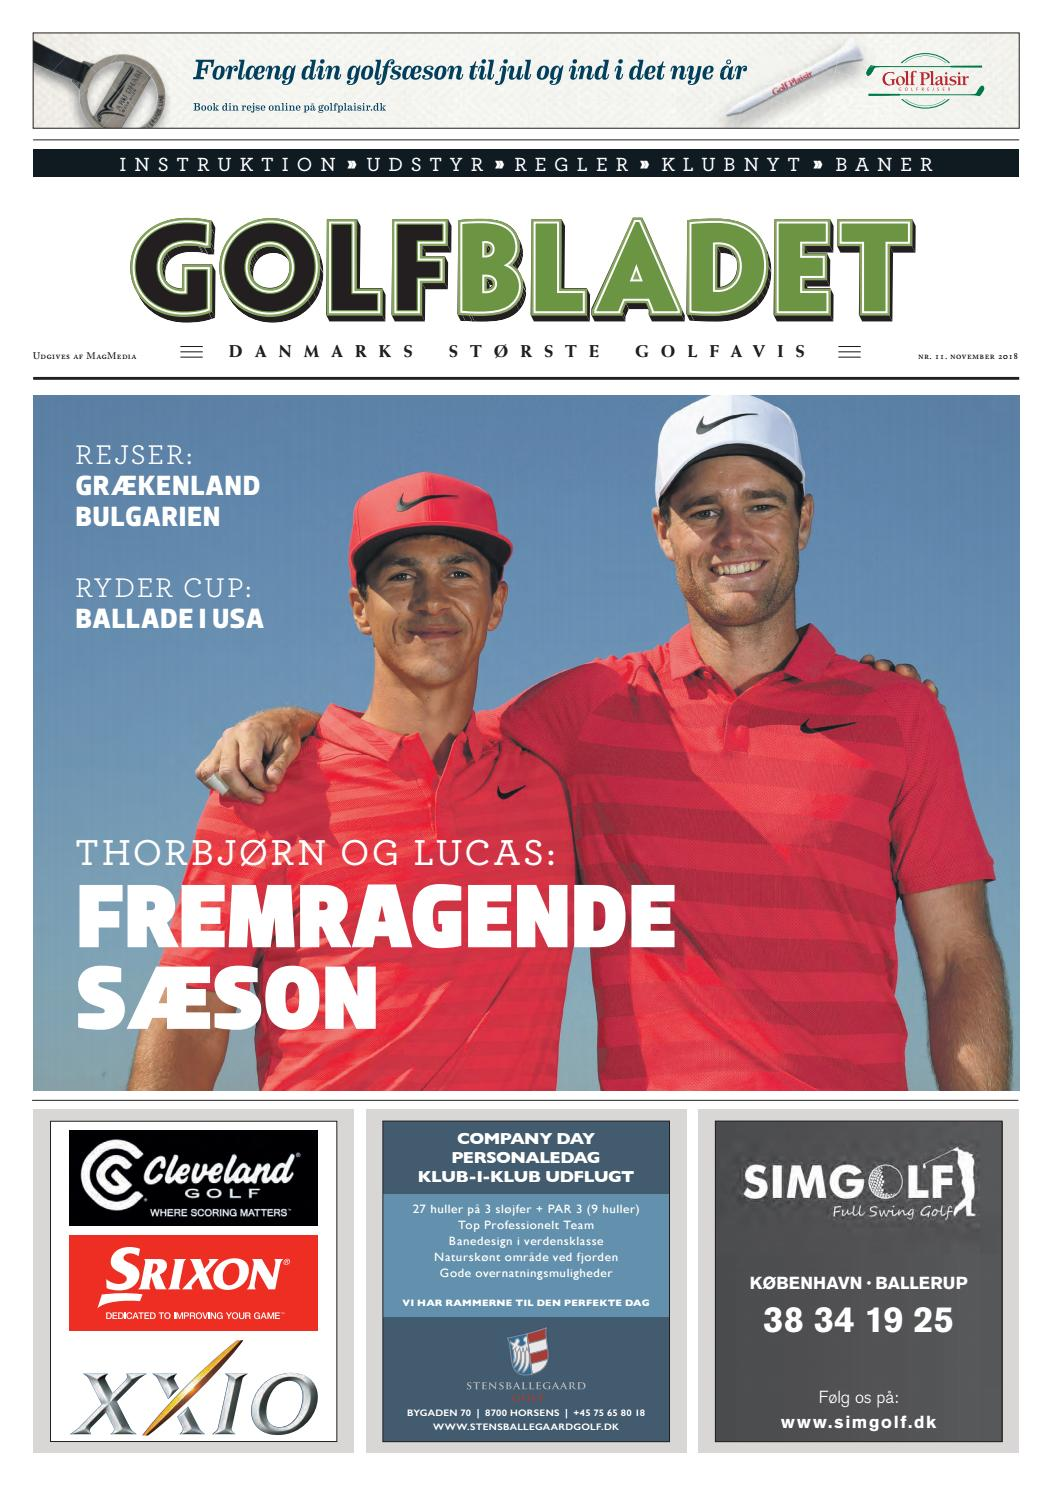 43156caf520e GOLFBLADET November 2018 by Morten Buckhøj - issuu